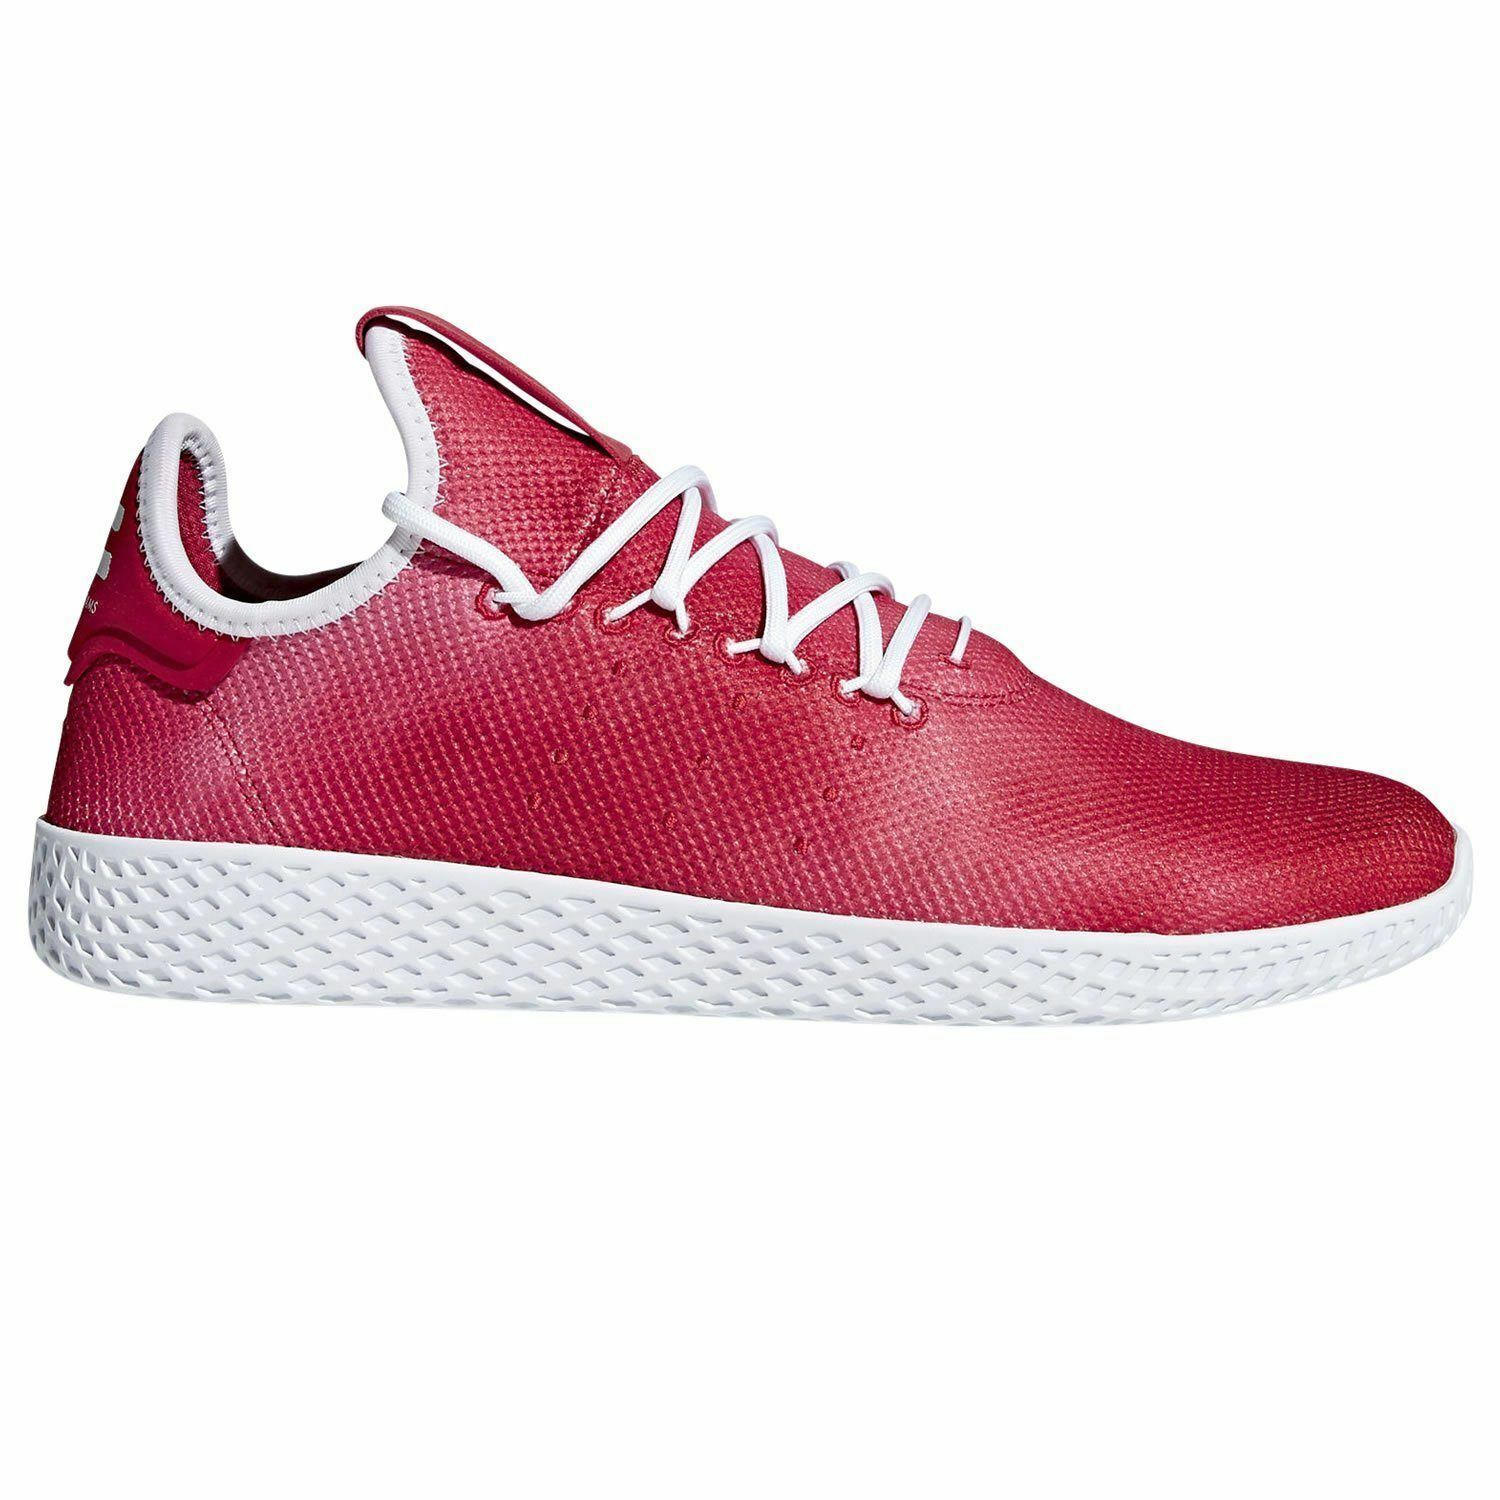 adidas PHARRELL WILLIAMS HU TENNIS SHOES rouge SNEAKERS TRAINERS RETRO NEW KICKS